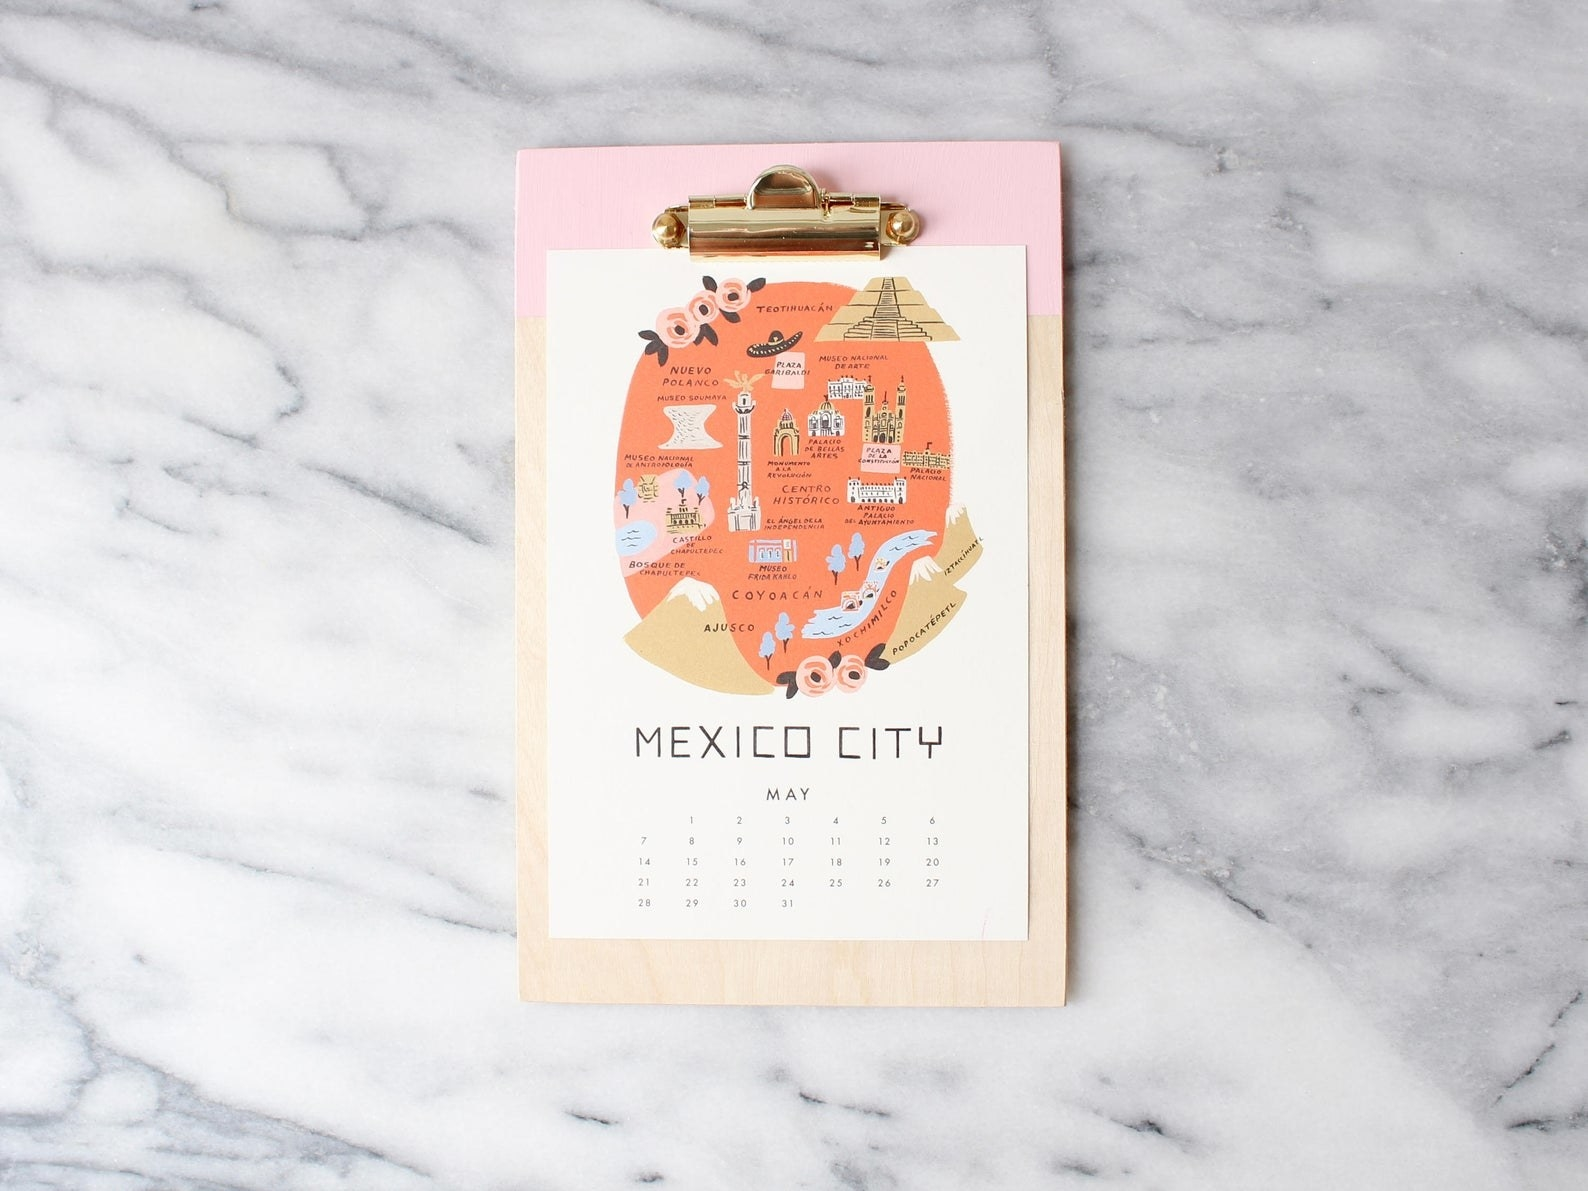 A small clipboard made of wood with a block of pink at the top and a gold clip with a calendar page on it